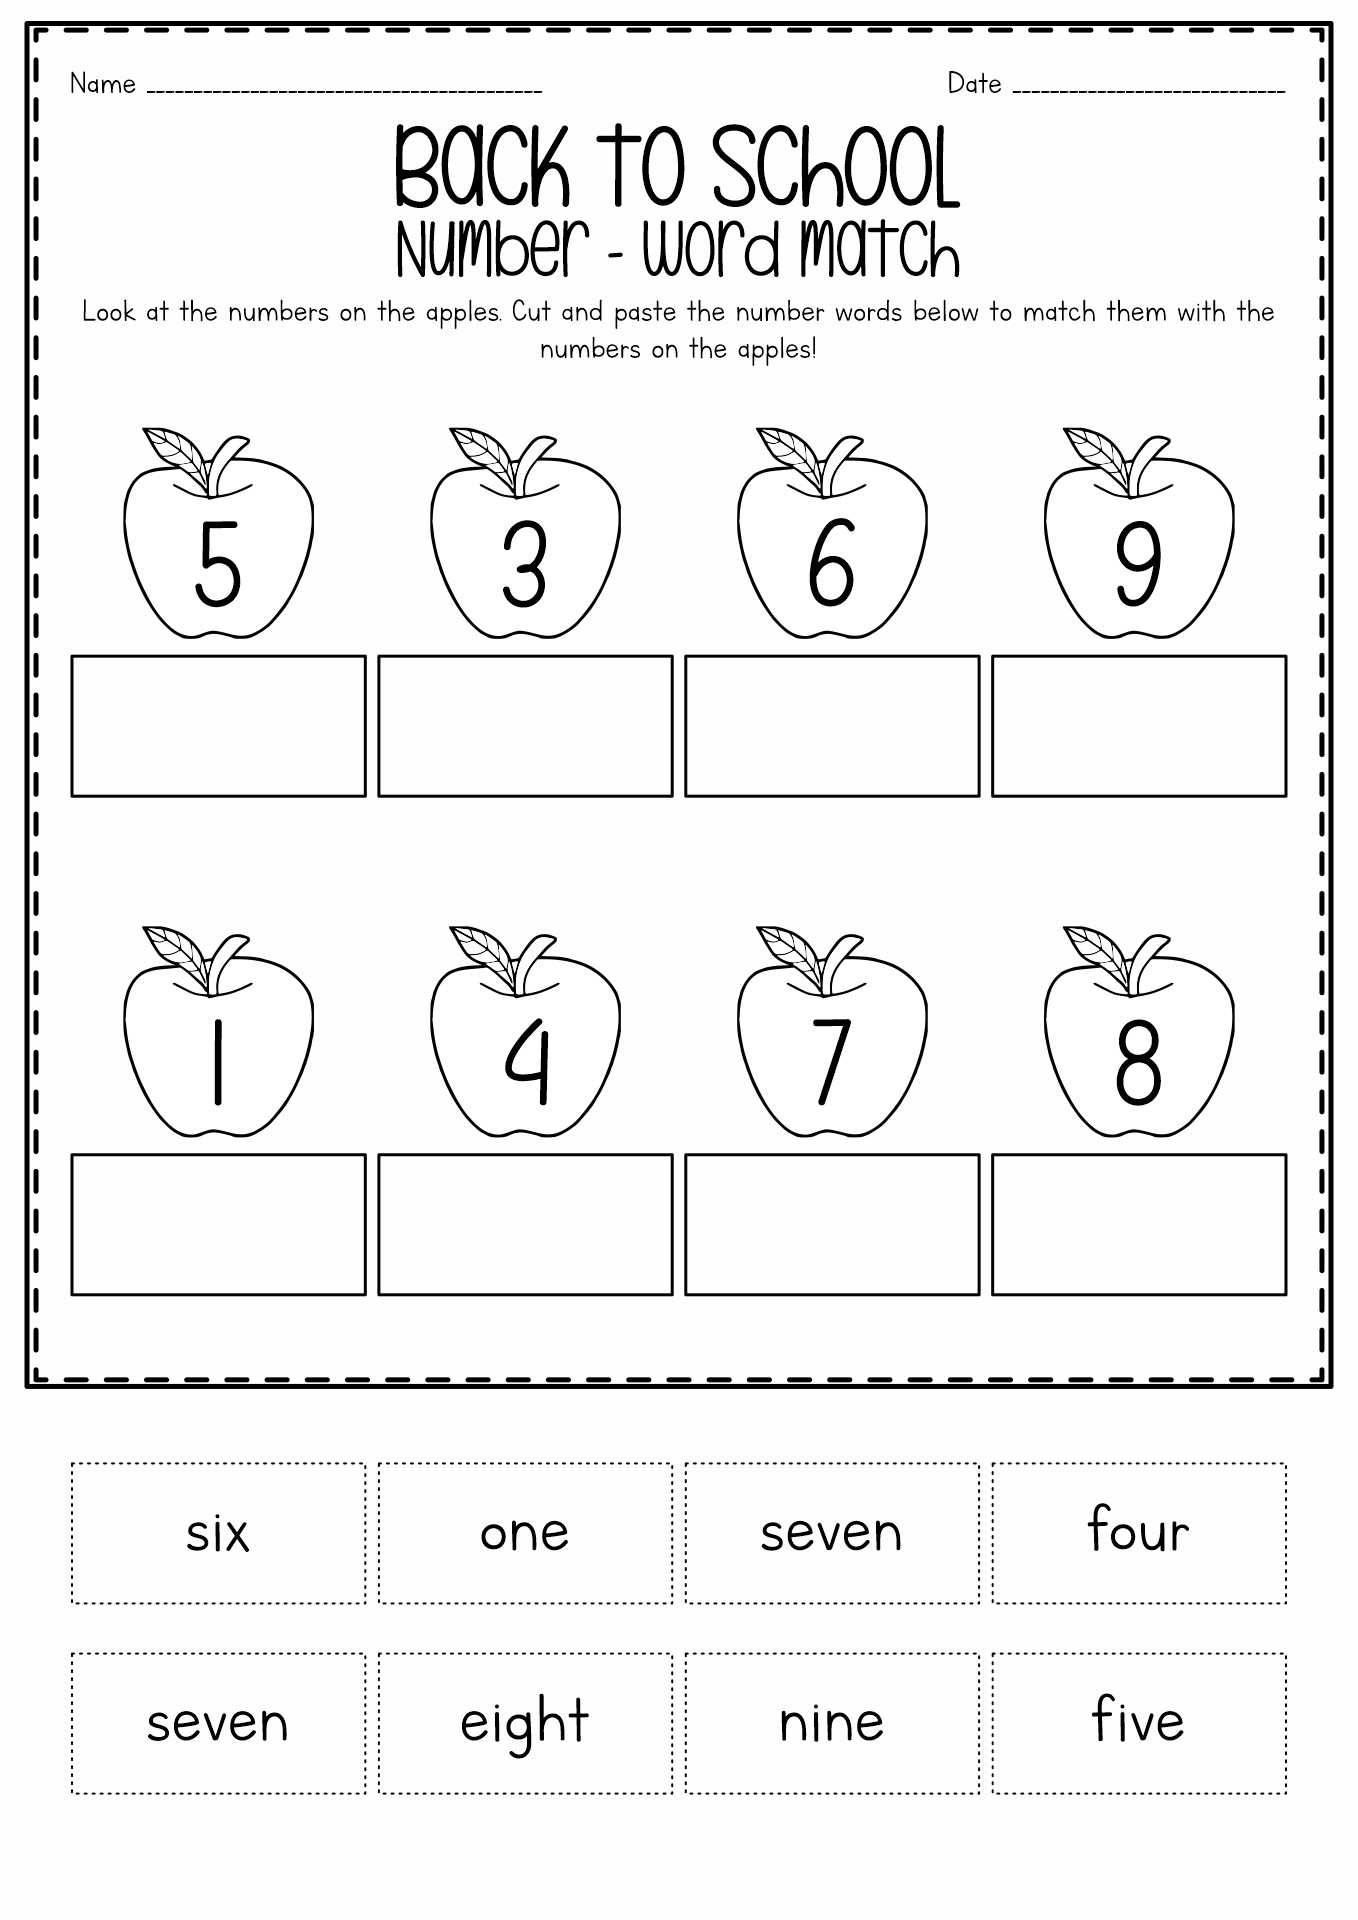 17 Best Images of Back To School Worksheets For